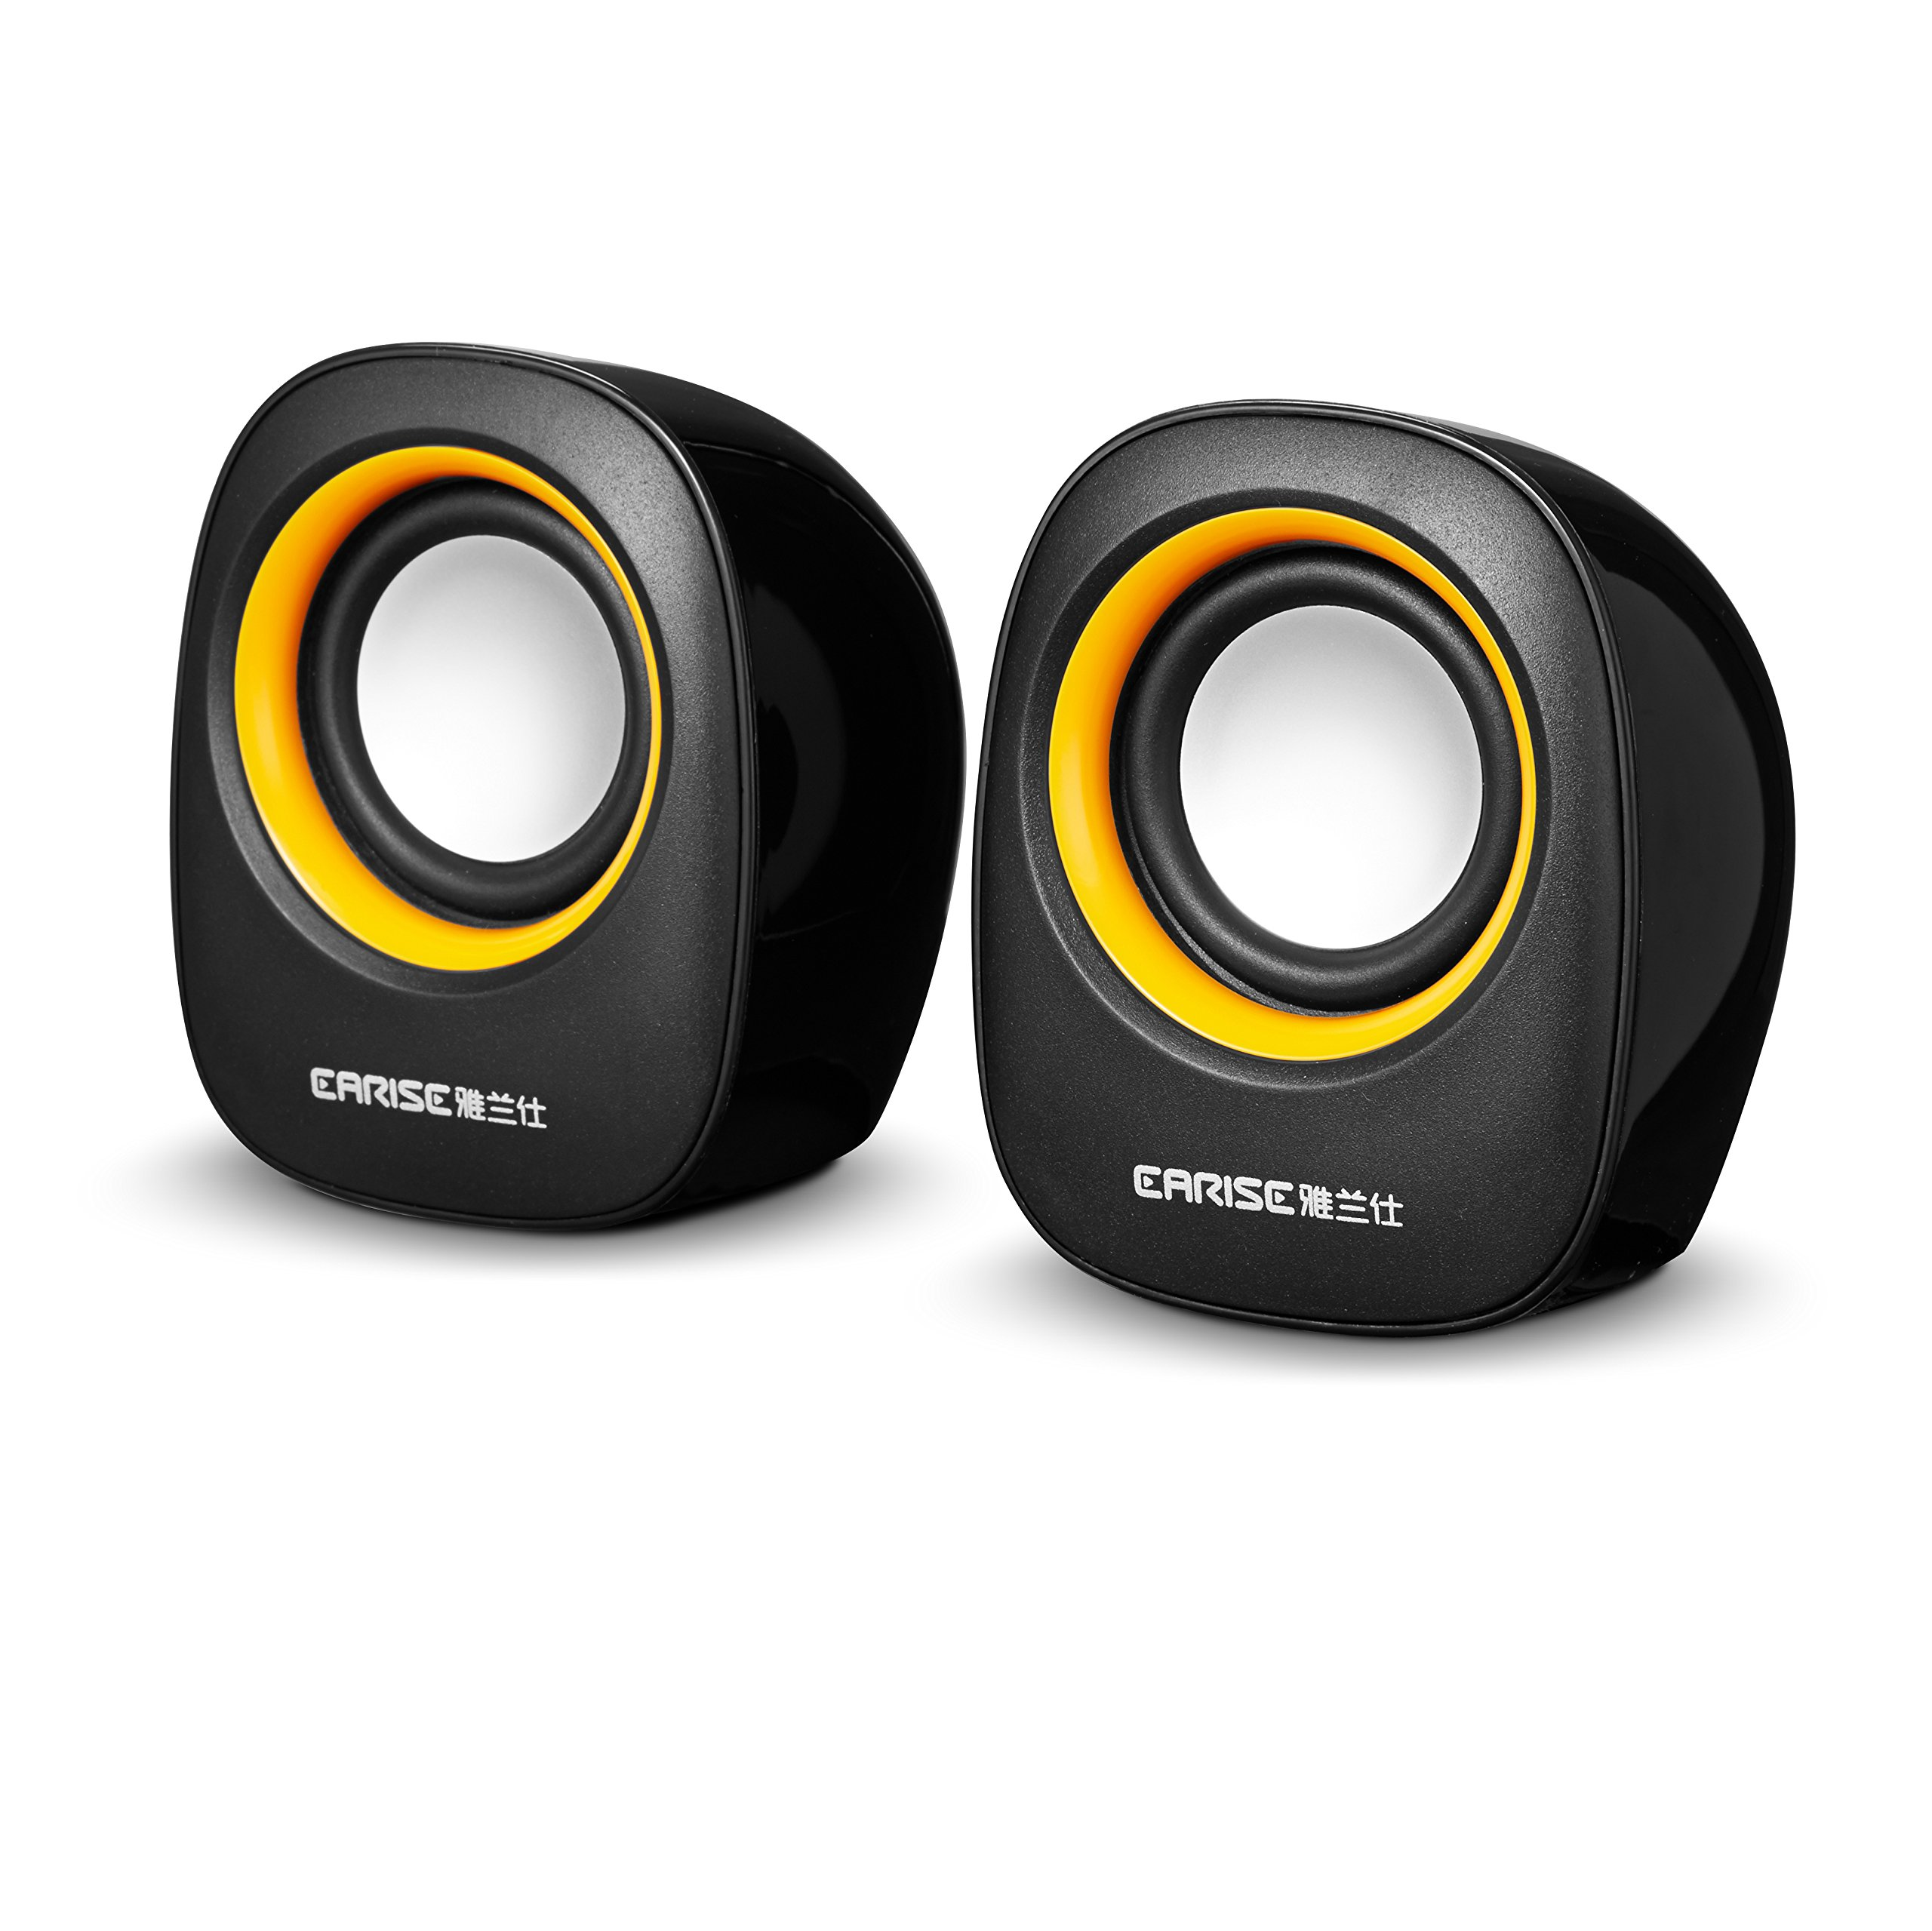 Earise AL-101 3.5mm Mini Computer Speakers Powered by USB Black